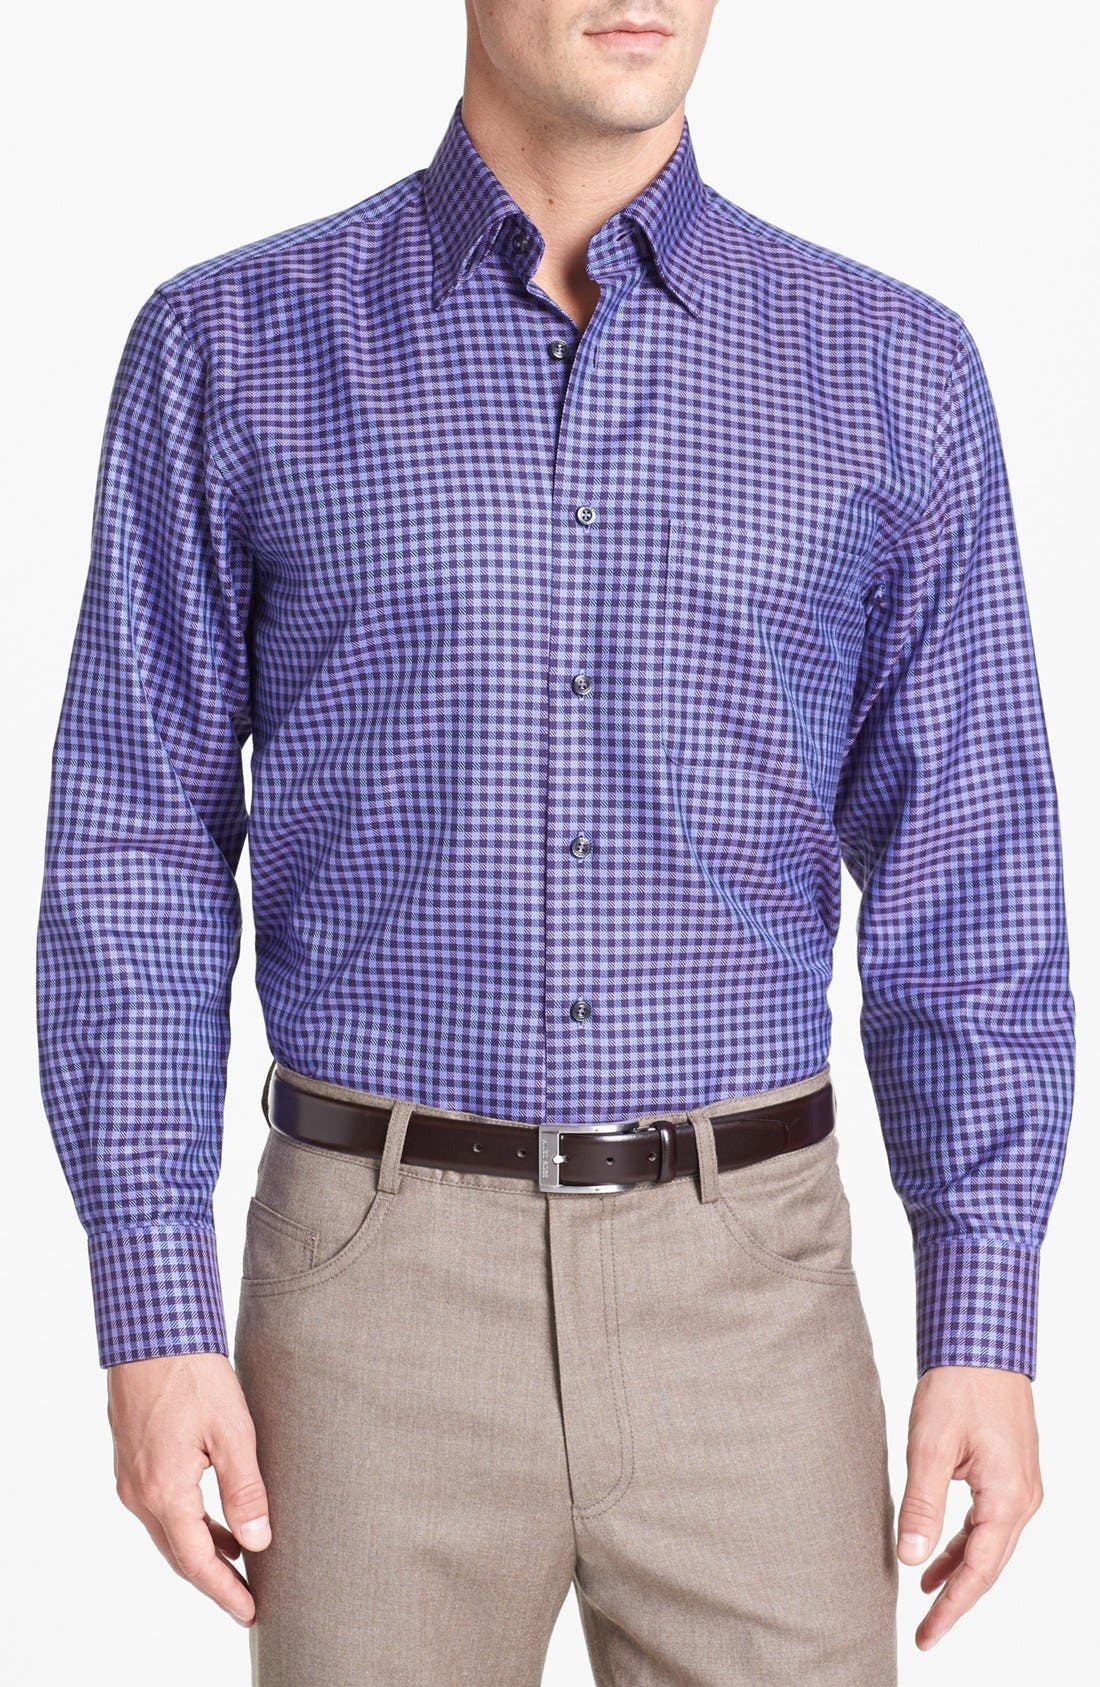 Alternate Image 1 Selected - Robert Talbott Regular Fit Sport Shirt